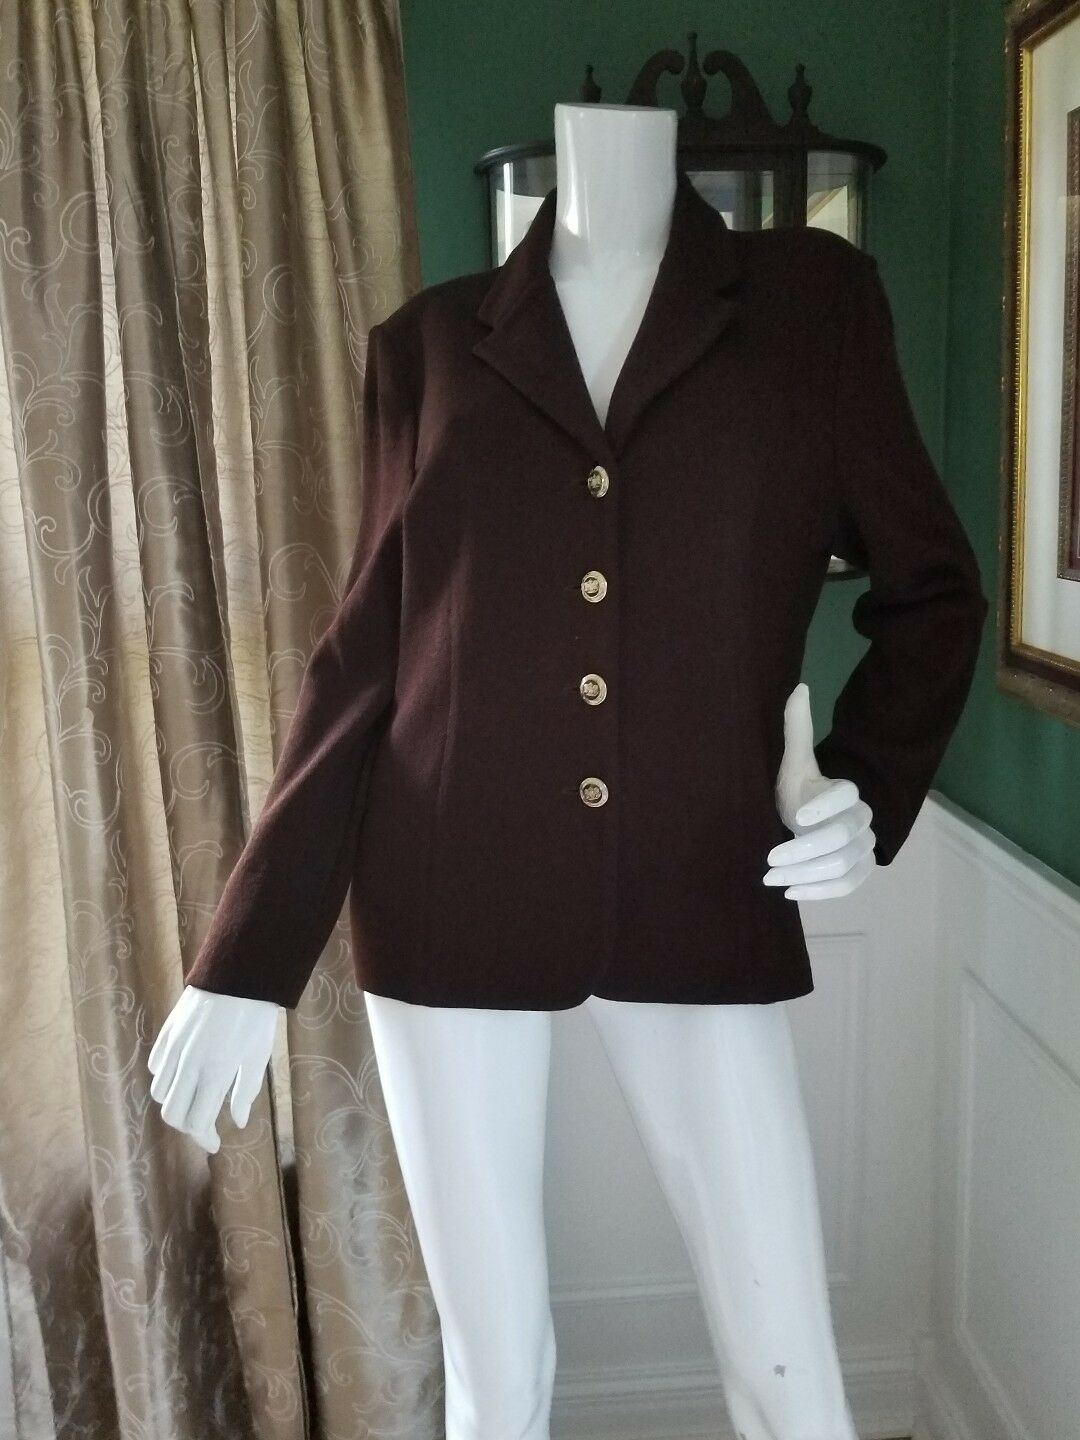 St. John Knits Classic Collection  Brown blazer - gold Buttons Size 10